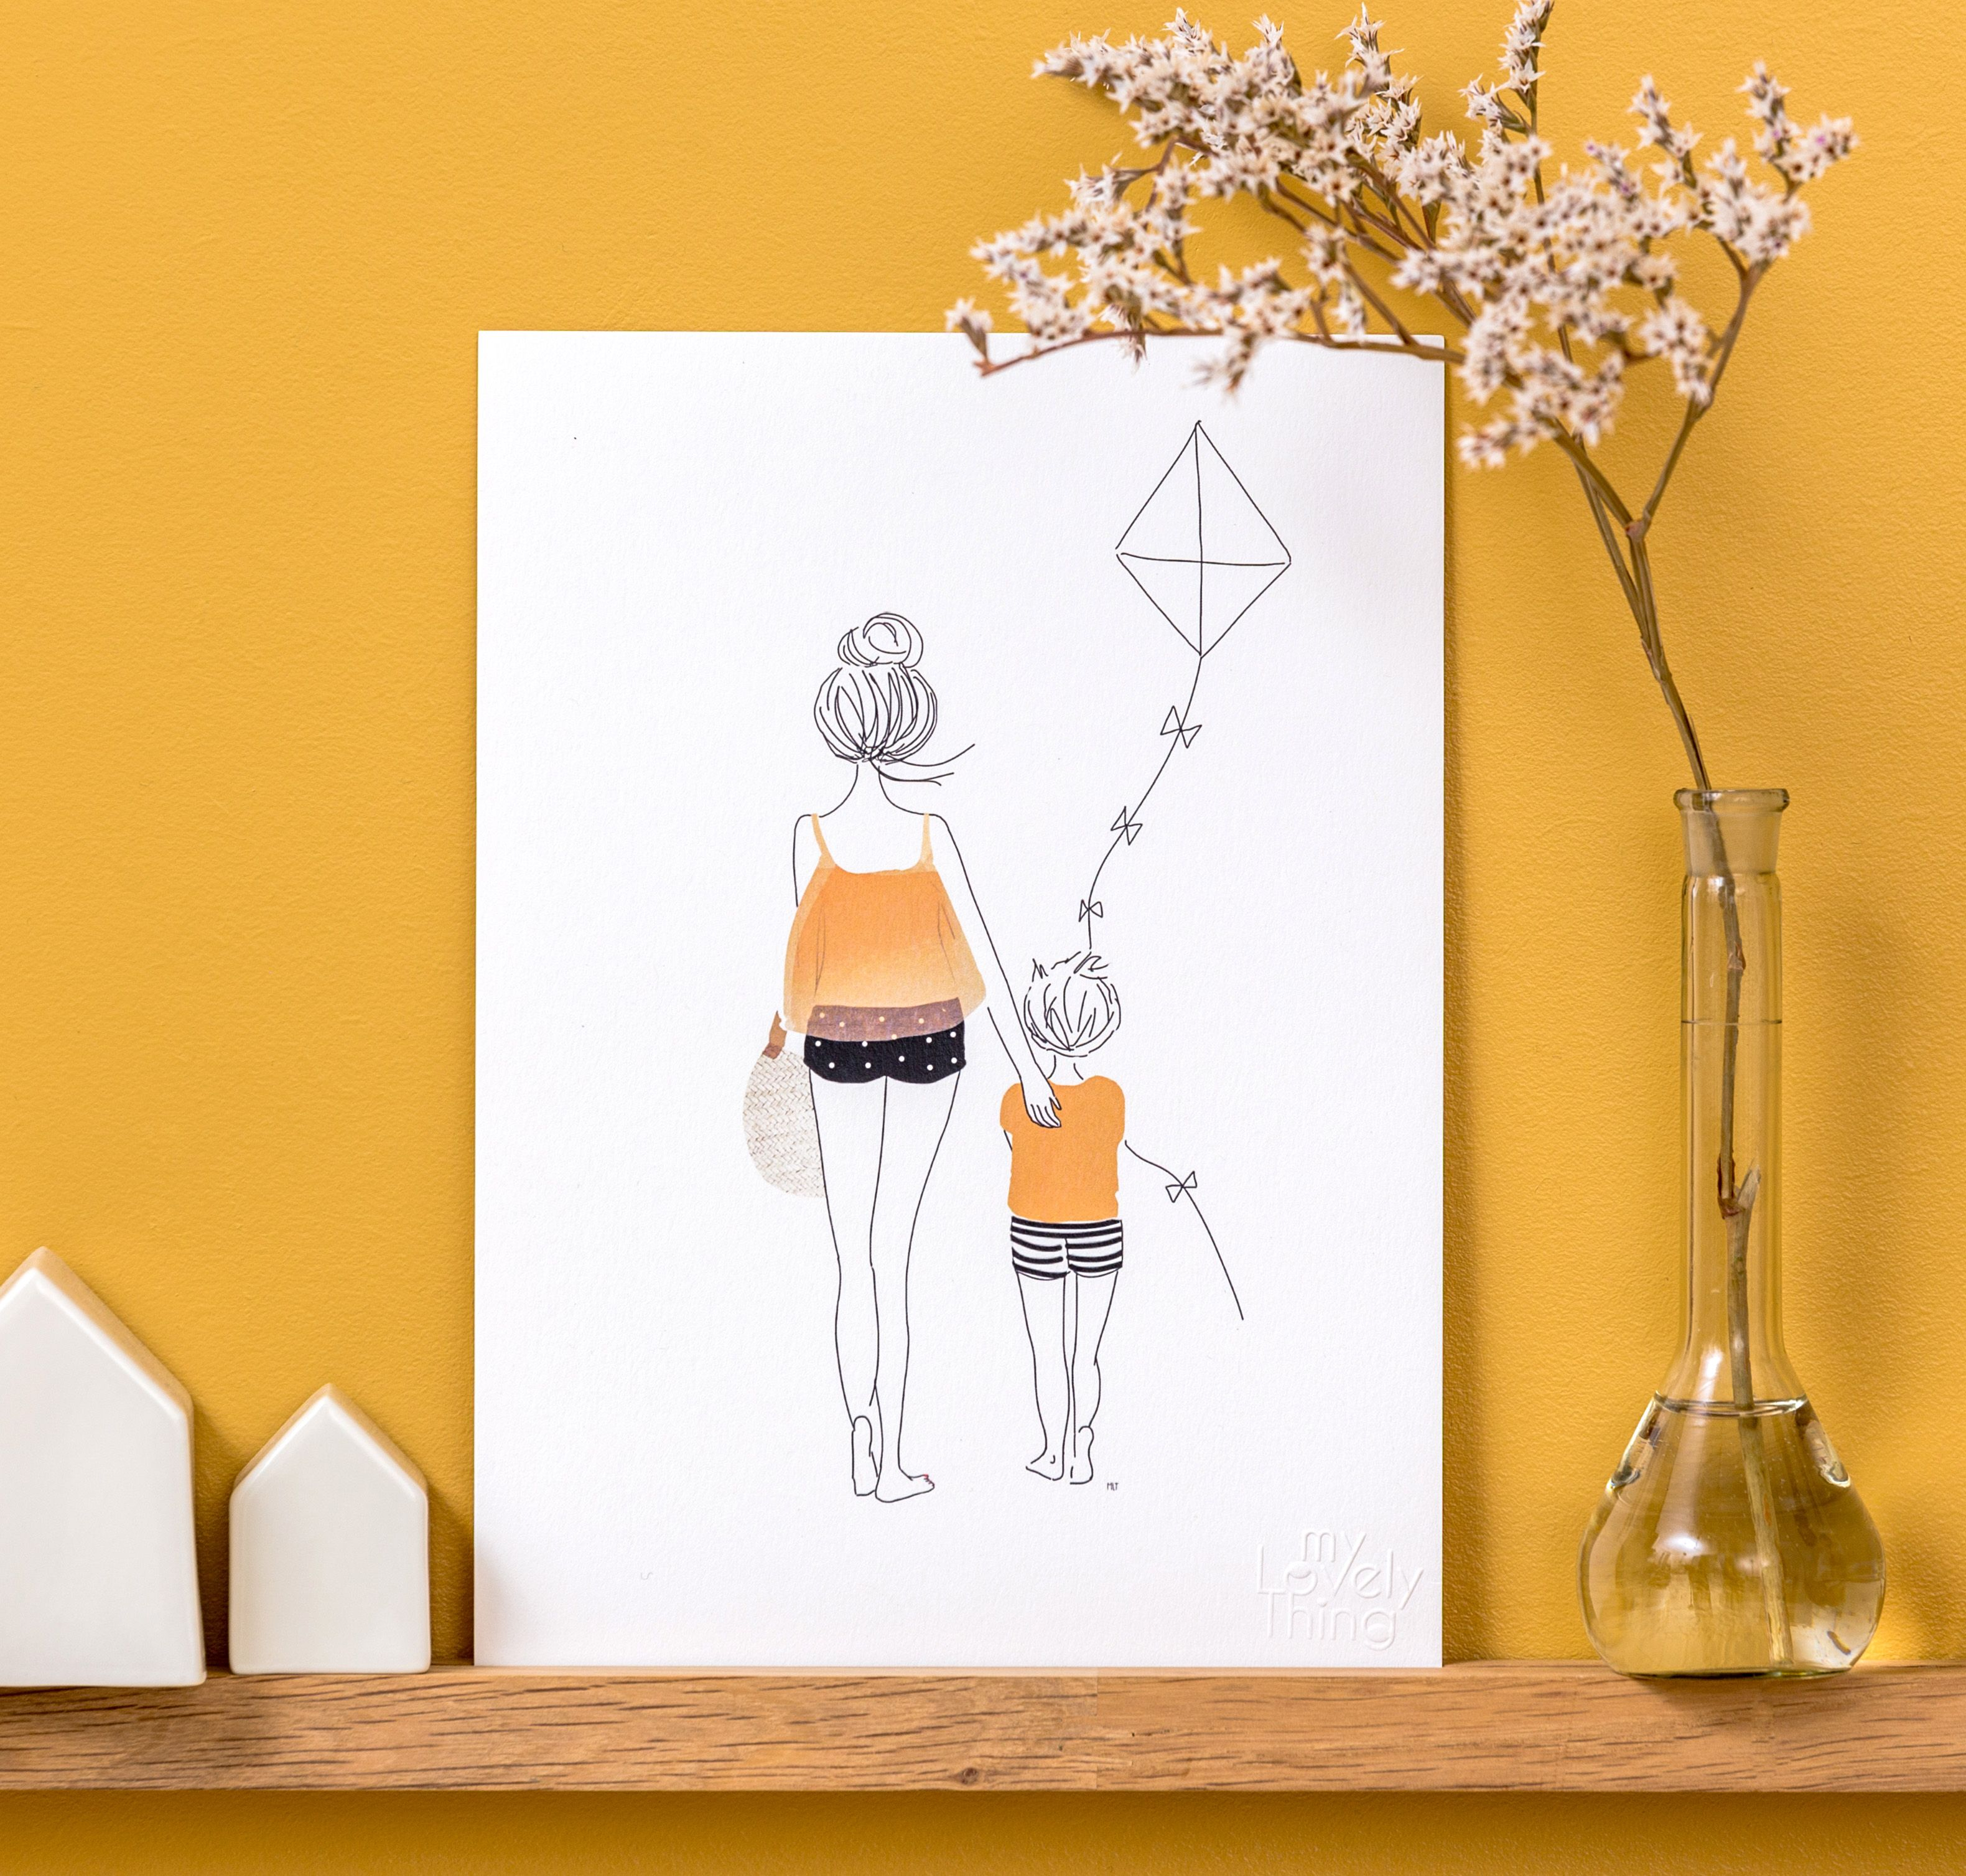 http://mylovelything.com/fr/12-affiches Création My Lovely Thing Photo Le Petit Florilège